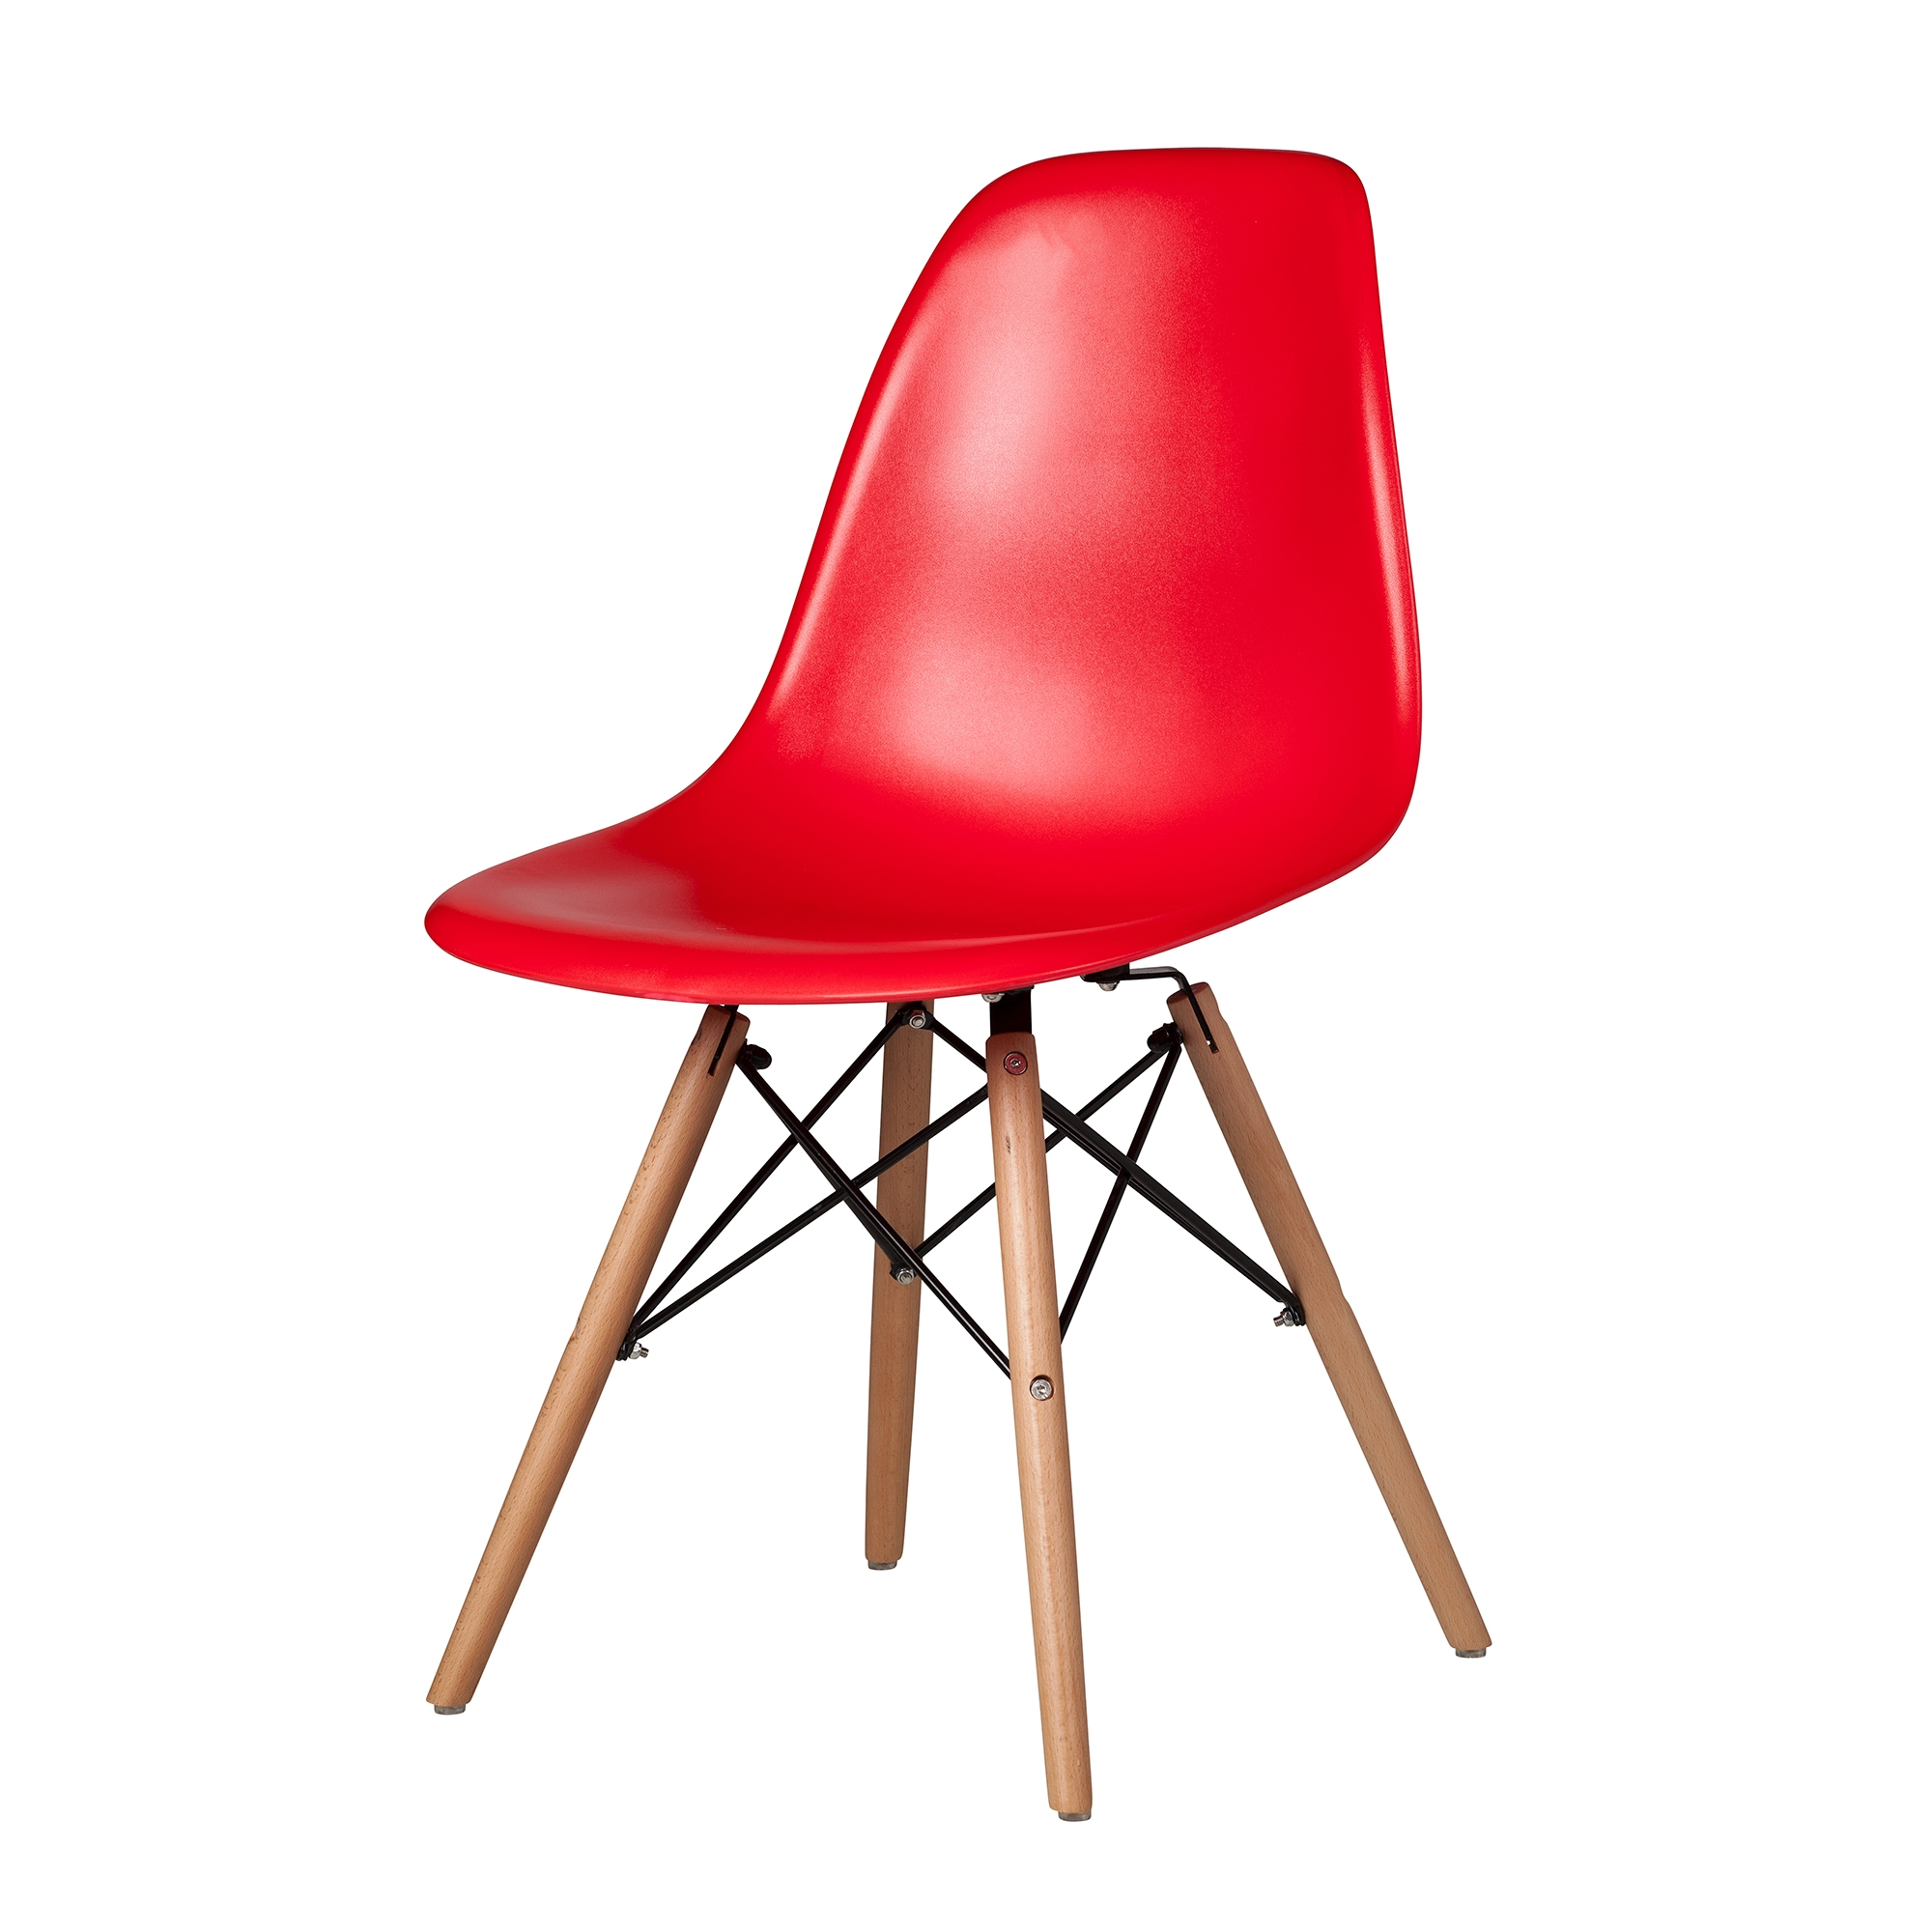 Charmant Charles Eames DSW Side Chair Mid Century Modern, Red